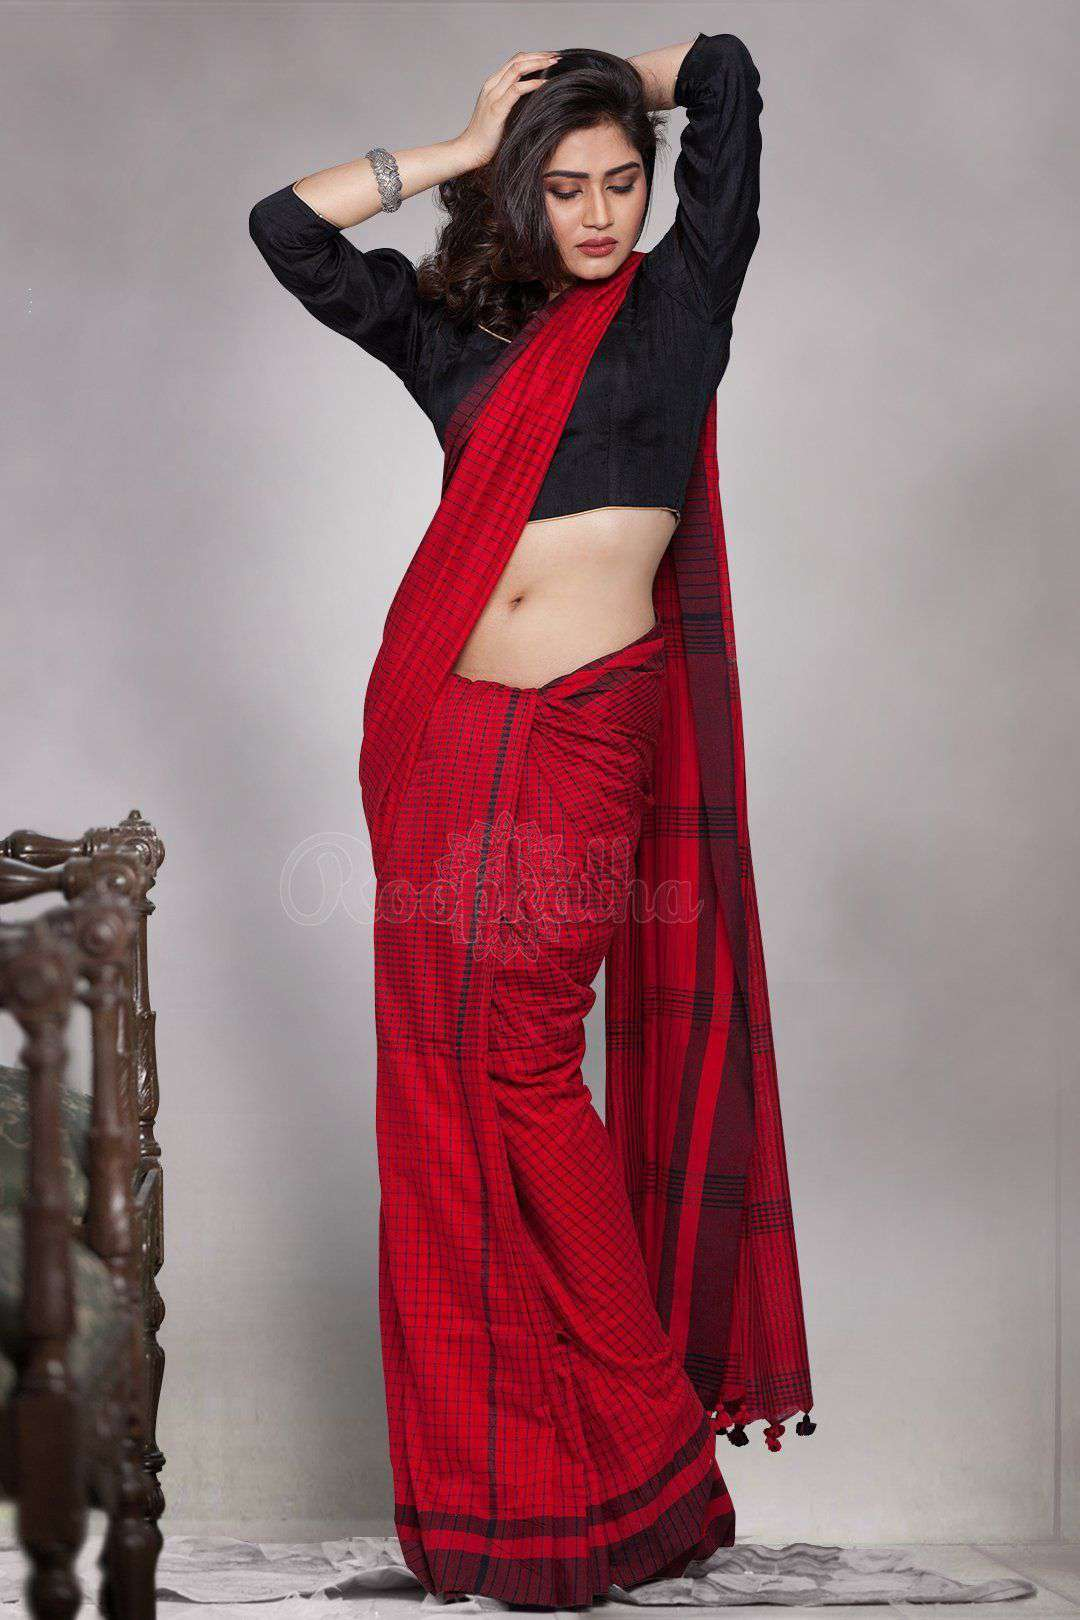 Red Cotton Handloom Saree With Checkered Designs